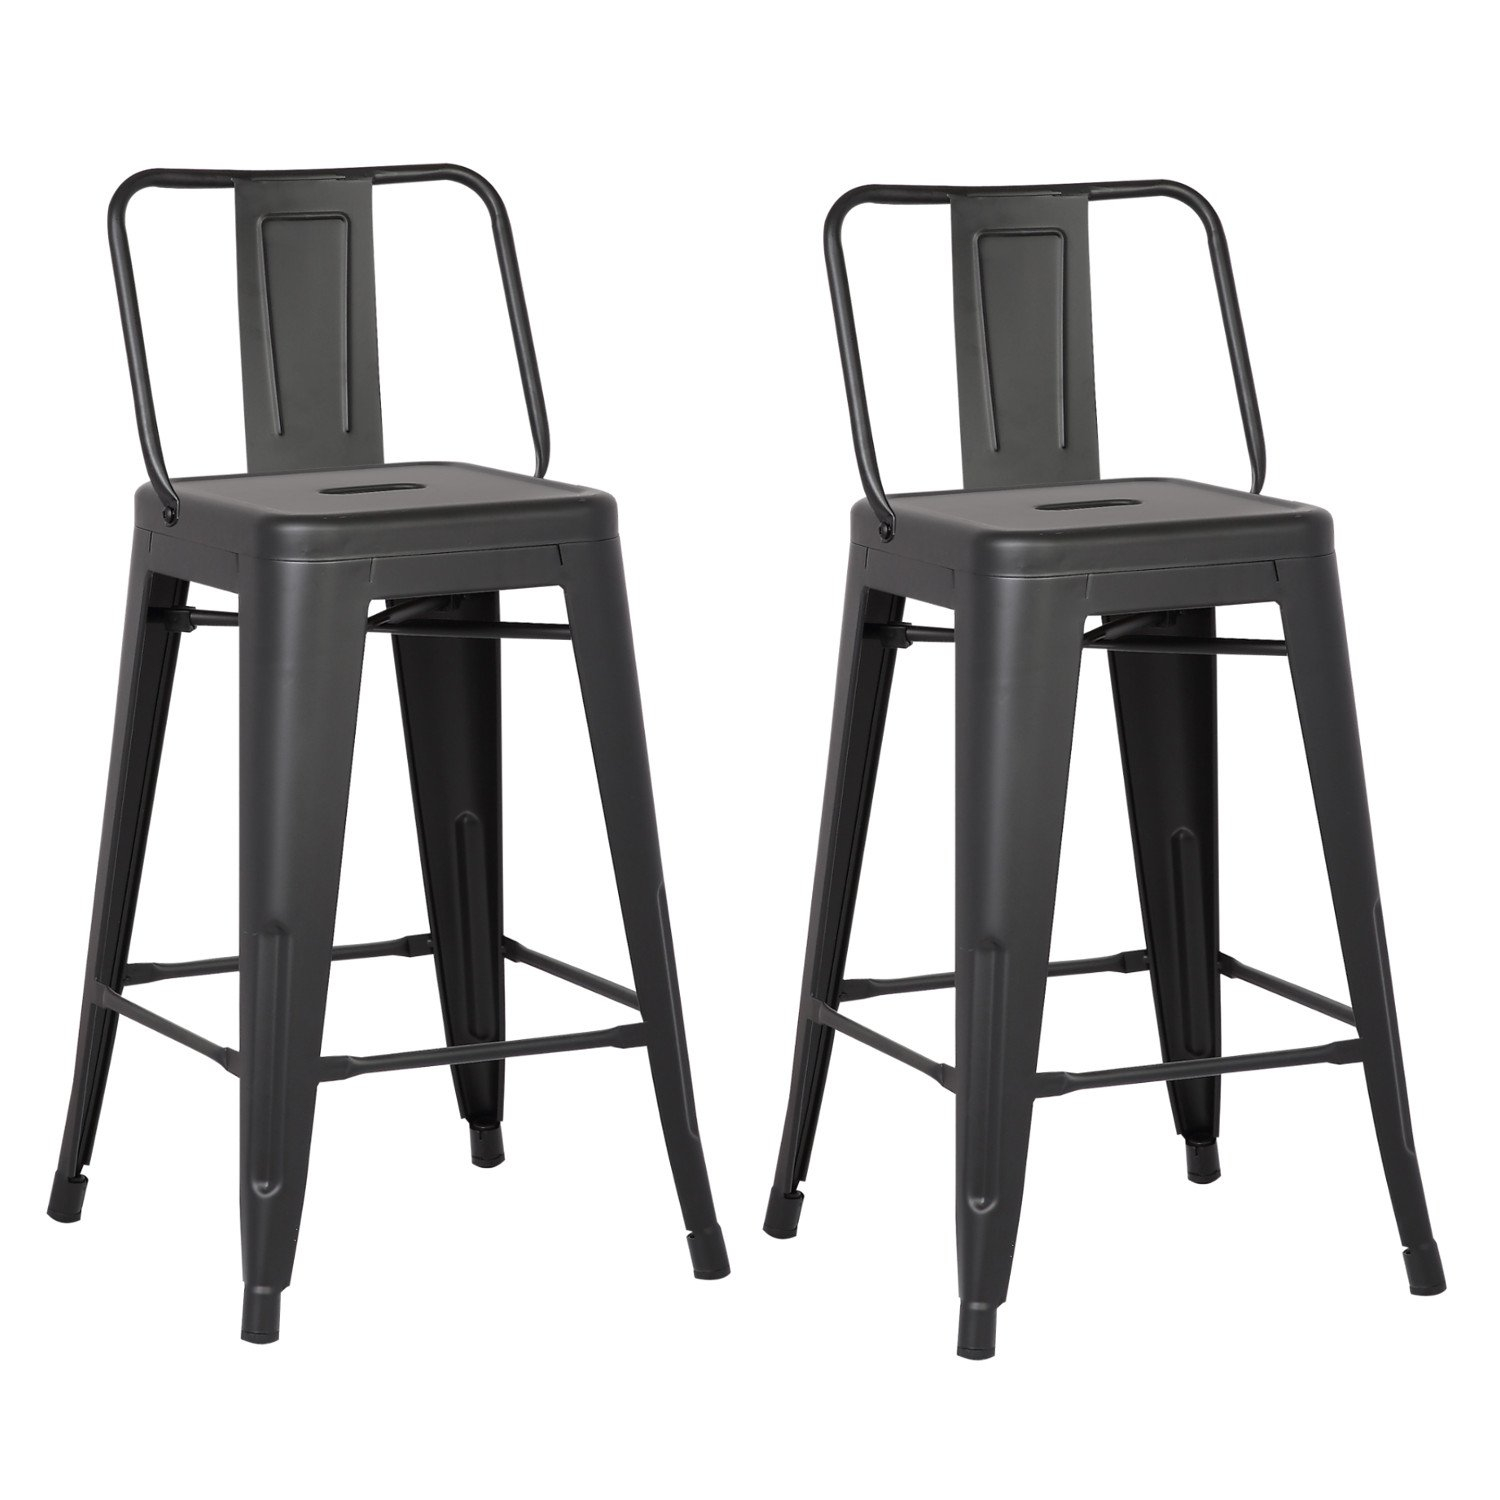 Amazon.com: AC Pacific Modern Industrial Metal Barstool With Bucket Back  And 4 Leg Design, 24